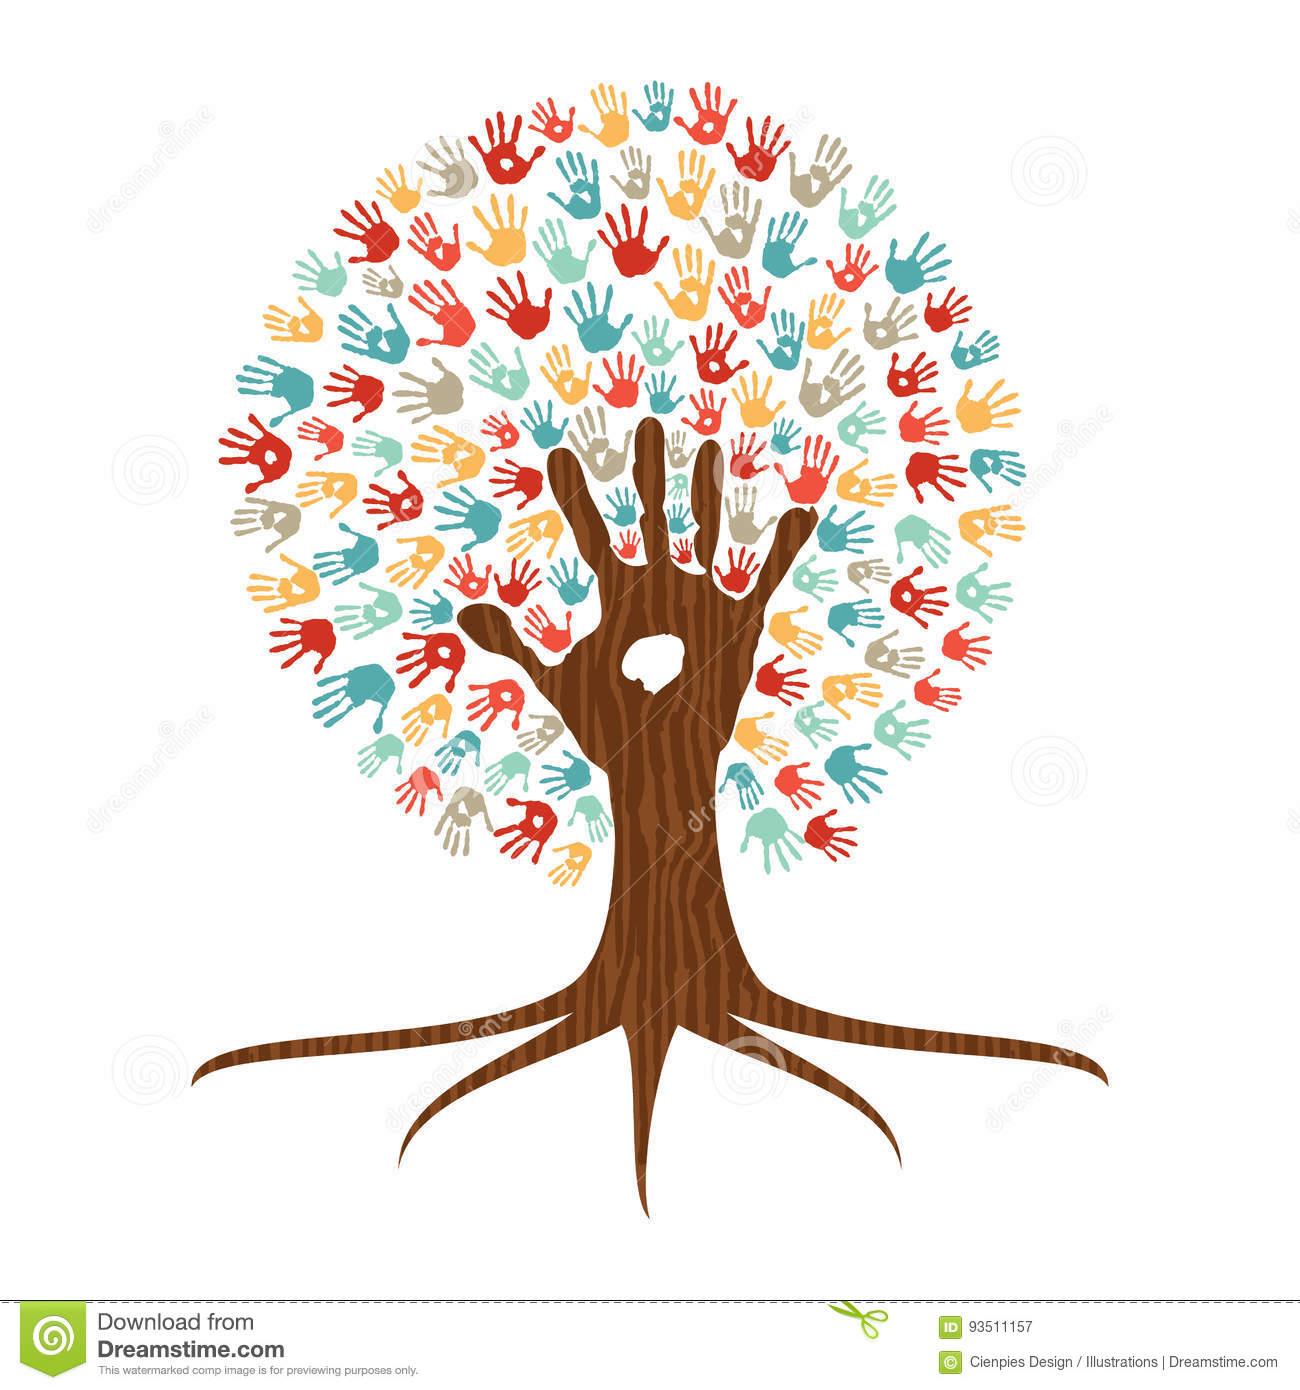 Plant top view vector in group download free vector art stock - Hand Print Art Tree Illustration For Community Help Stock Vector